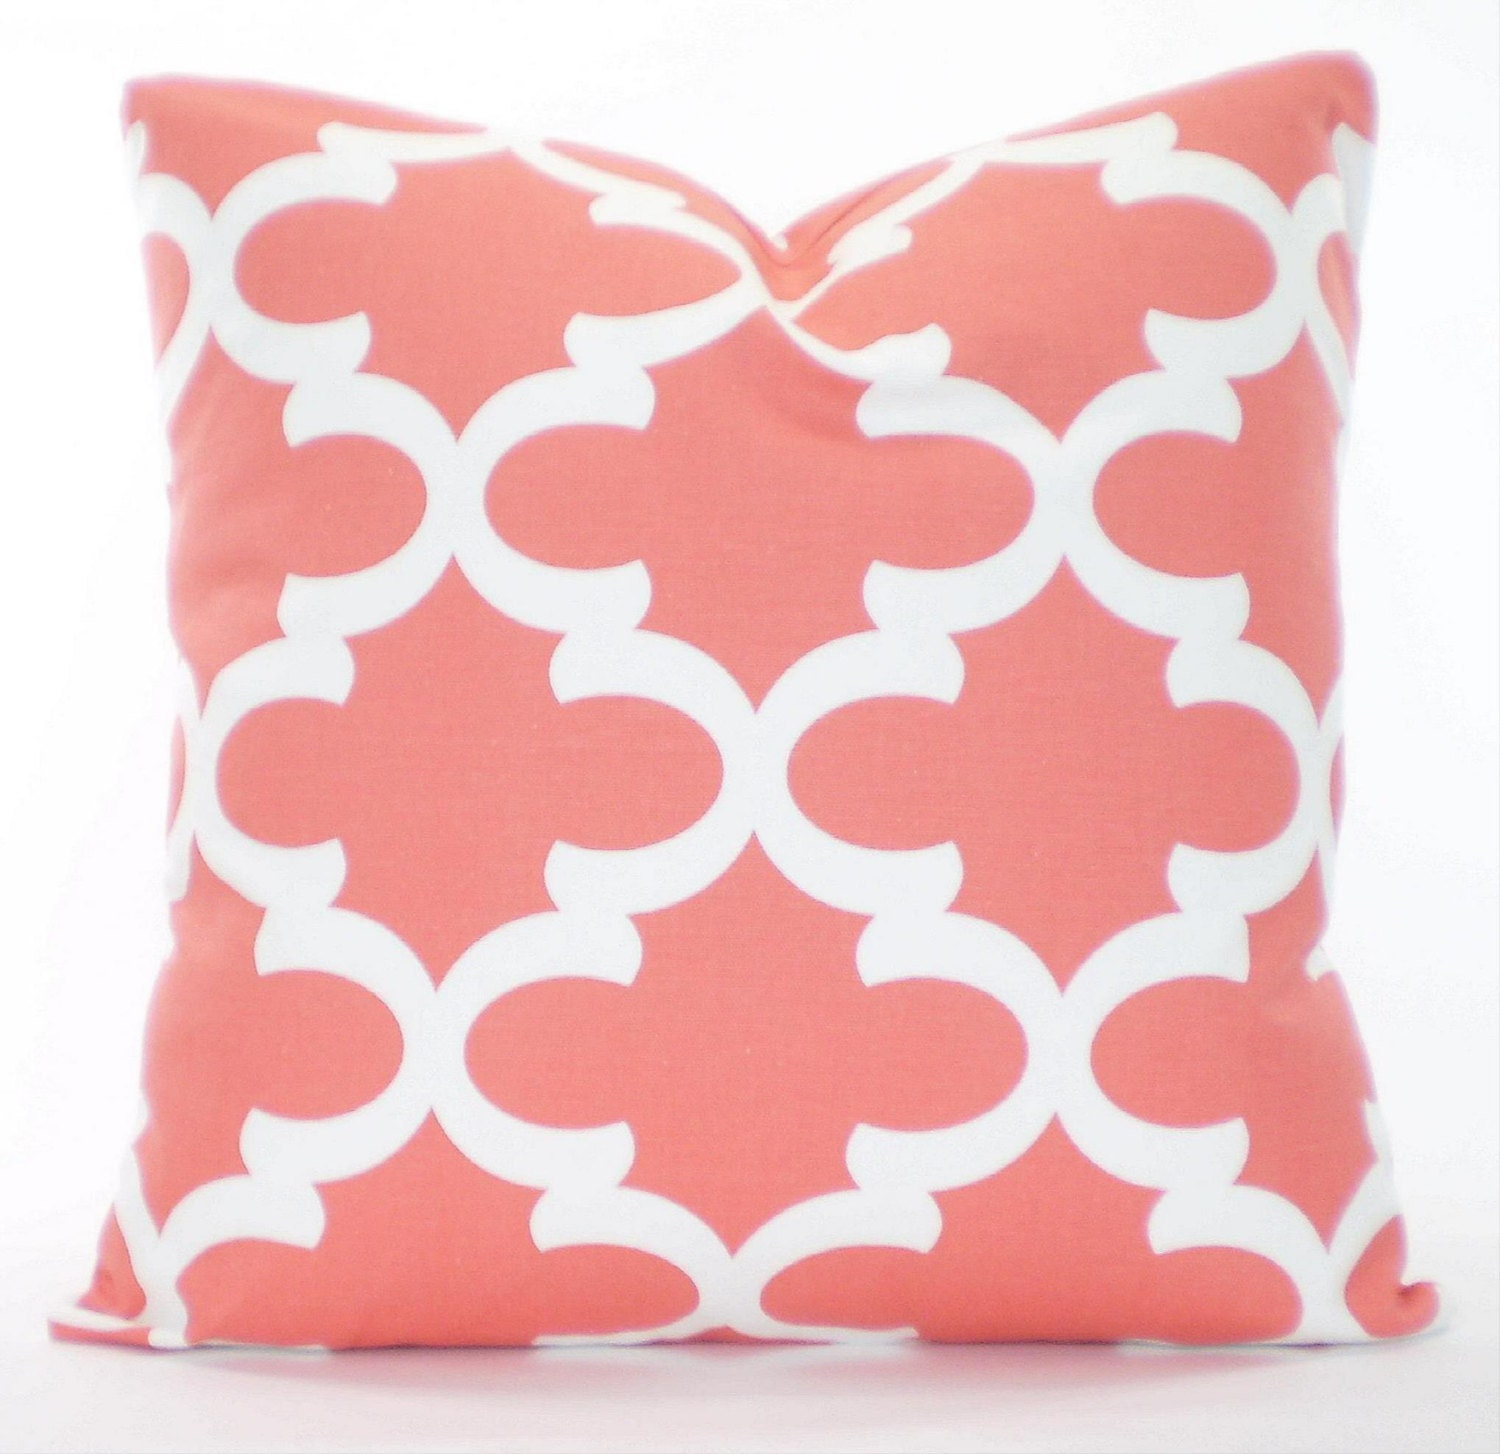 Decorative Pillows Etsy : Coral Throw Pillow Covers Cushion Cover by PillowCushionCovers